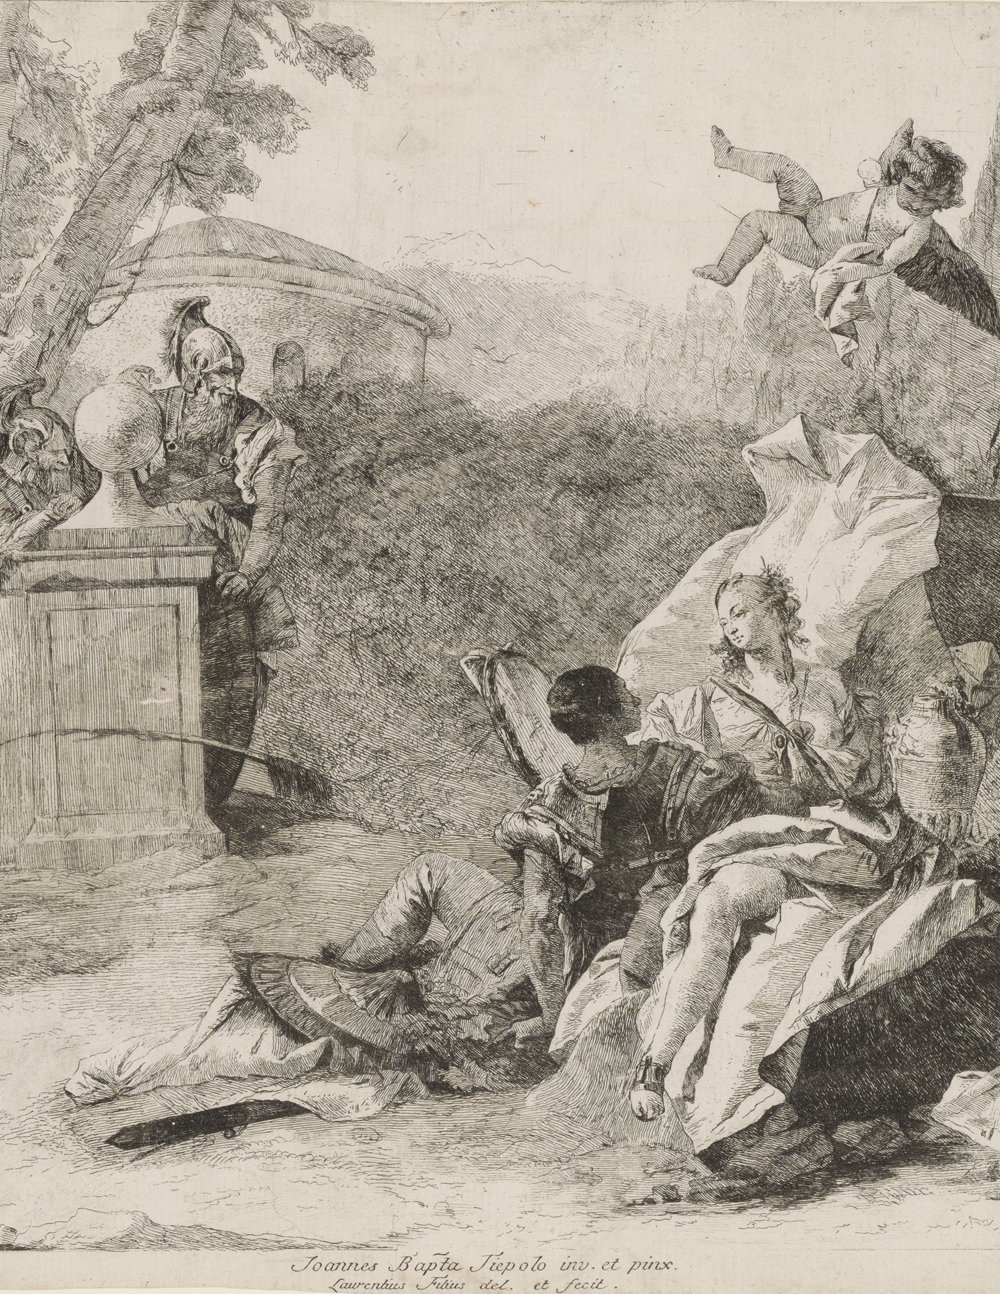 Lorenzo Tiepolo after Giovanni Battista Tiepolo,  Rinaldo and Armida  (etching ca 1758).  Courtesy of the  Yale University Art Gallery .  Appears:  Writing